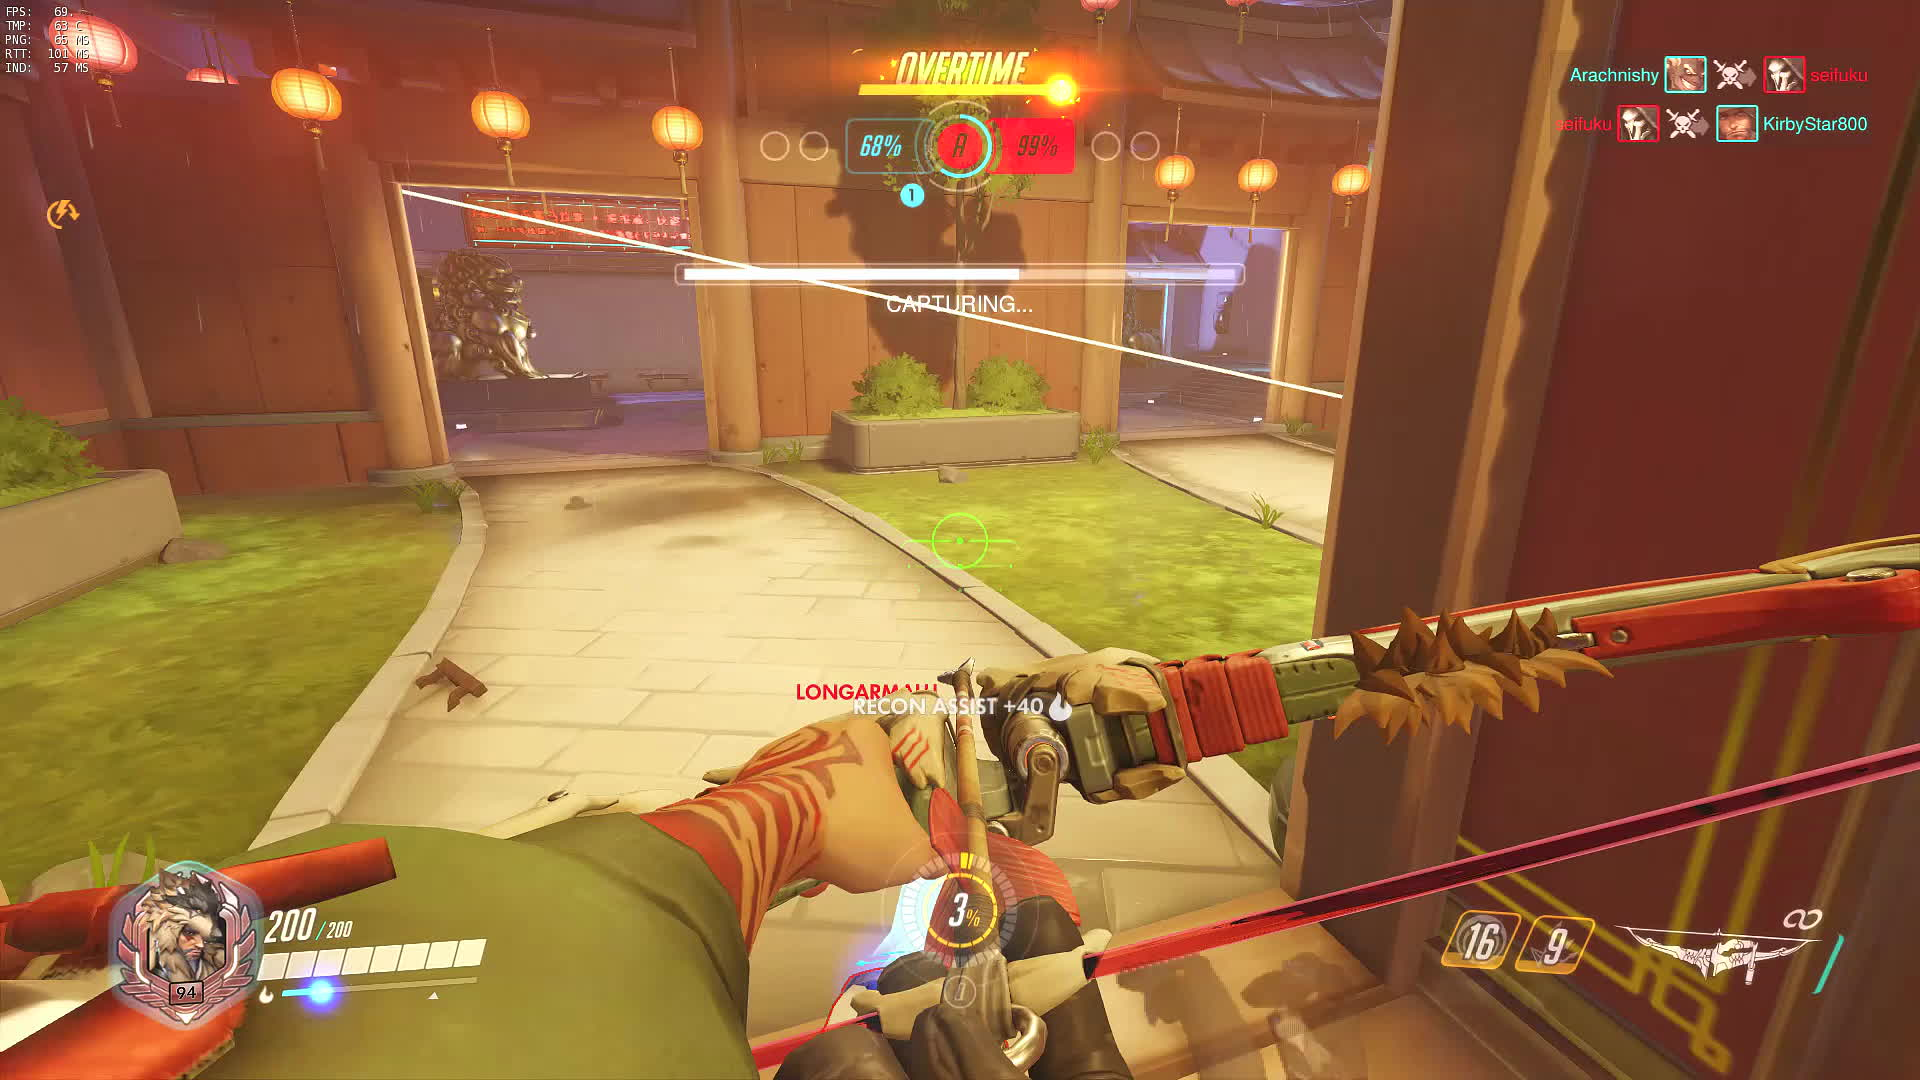 60fpsgaminggifs, Overwatch: Hanzo playing the objective (Slowmo) GIFs